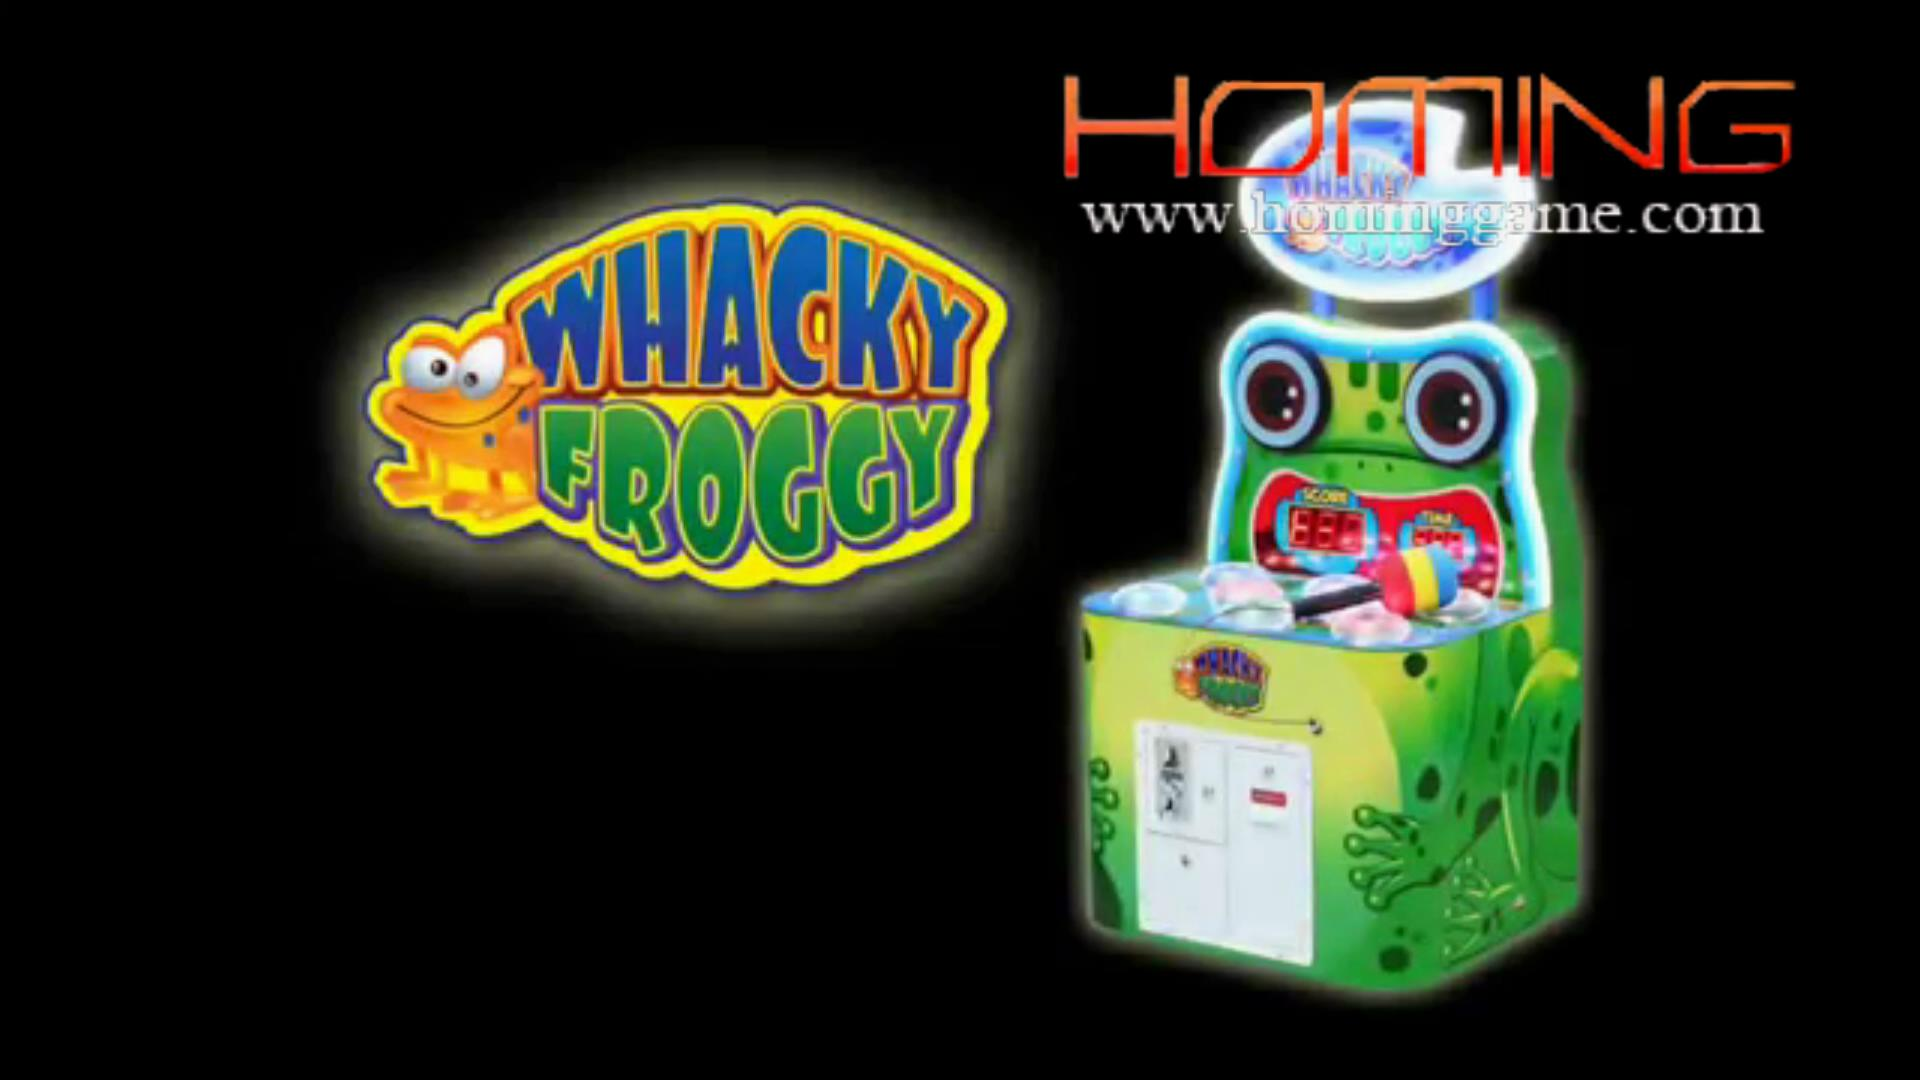 Whacky Frogggy Hit Hammer Arcade Redemption Game Machine,whacky froggy game,whacky froggy,whacky froggy redemption game,hit frog game machine,hammer arcade game,hit hammer arcade game machine,game machine,arcade game machine,coin operated game machine,amusement park game machine,indoor game machine,slot game machine,kids game machine,entertainment game machine,slot machine